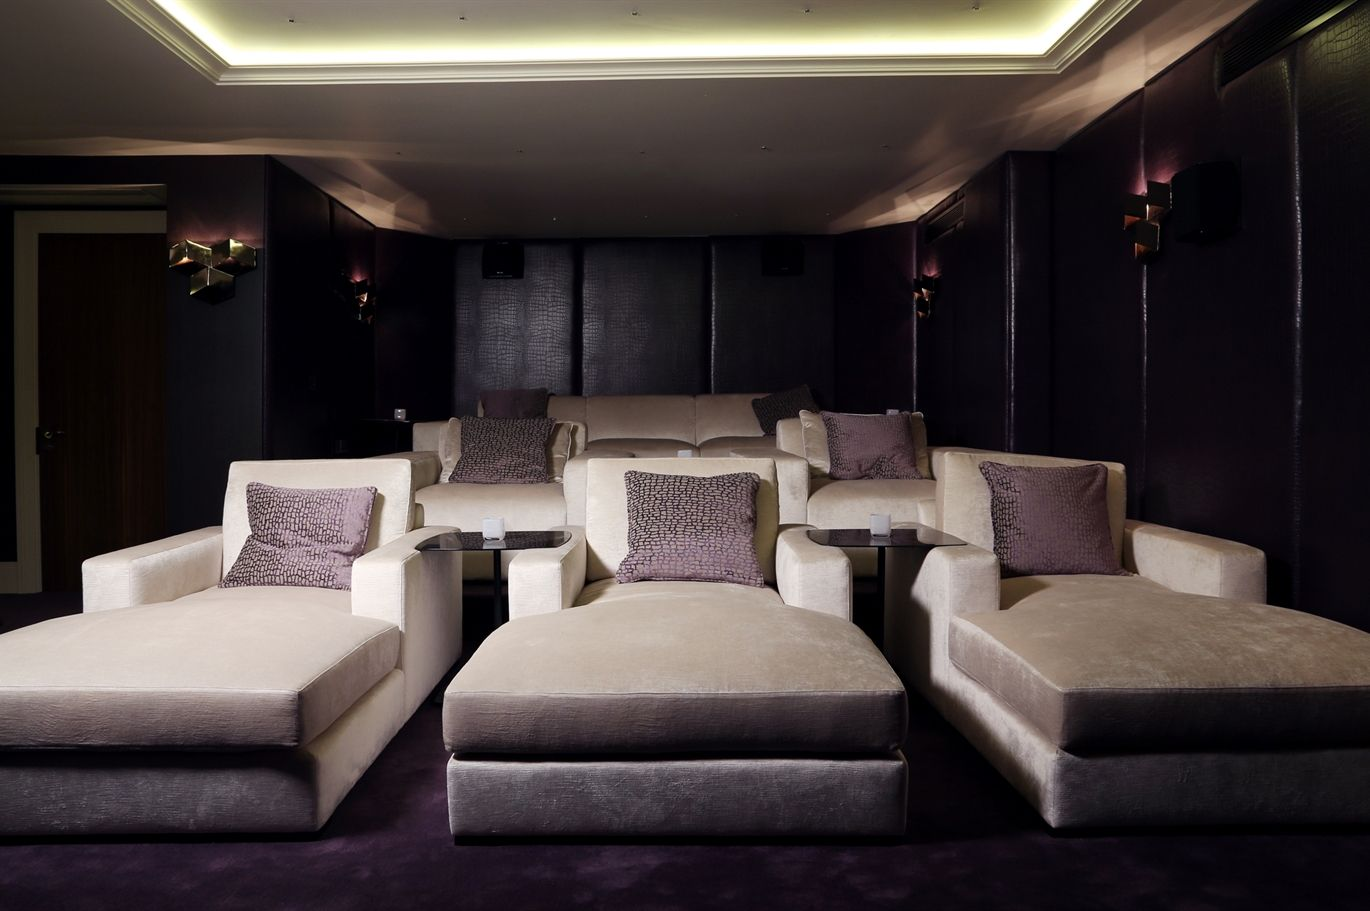 Theater Couches Movie Room Sofa Couch Perfect For A Bat Movie Room The